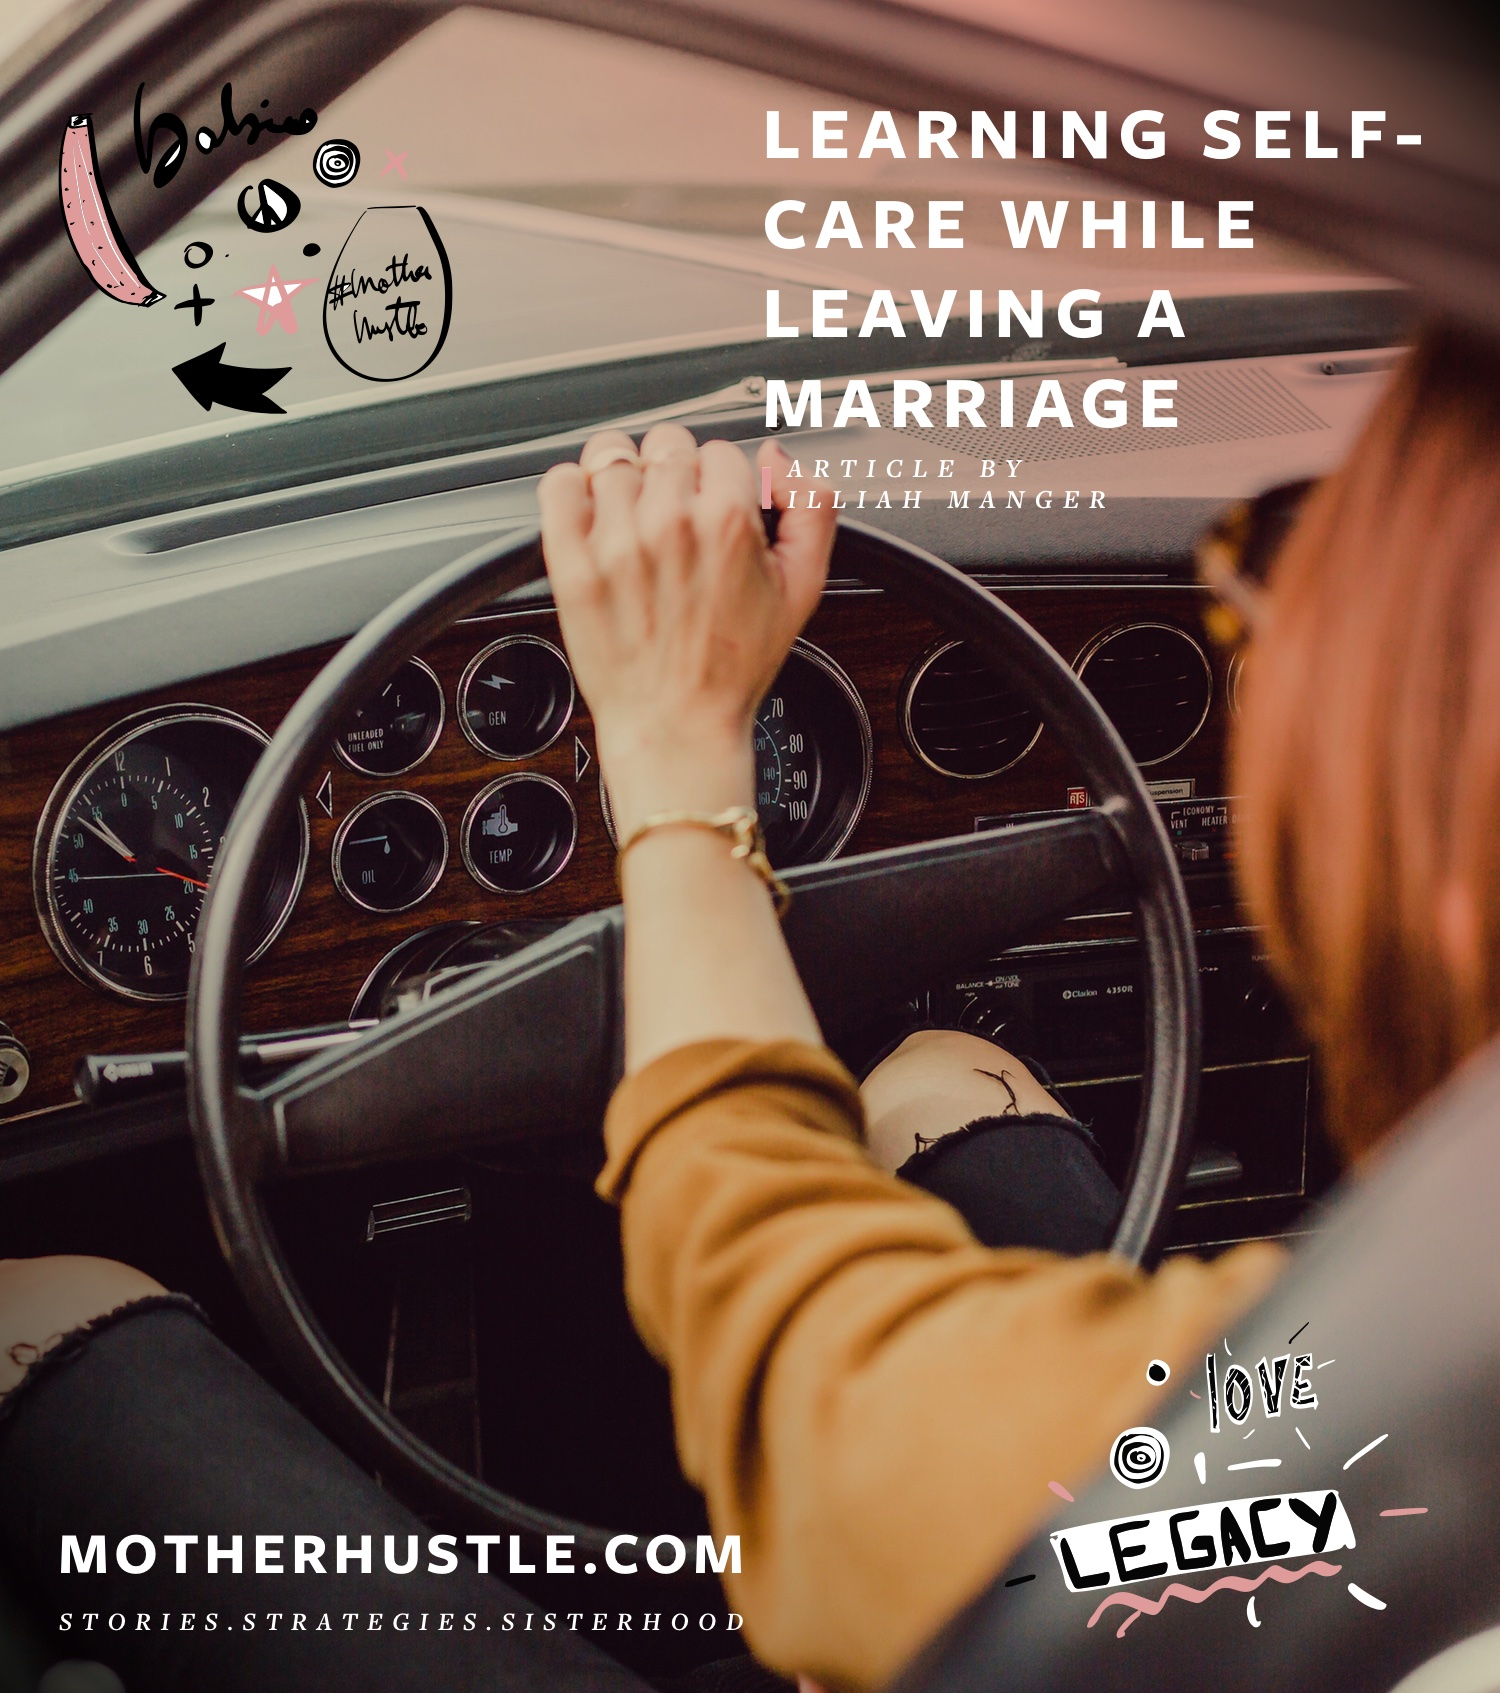 Learning Self-Care While Leaving a Marriage - by Illiah Manger for MotherHustle